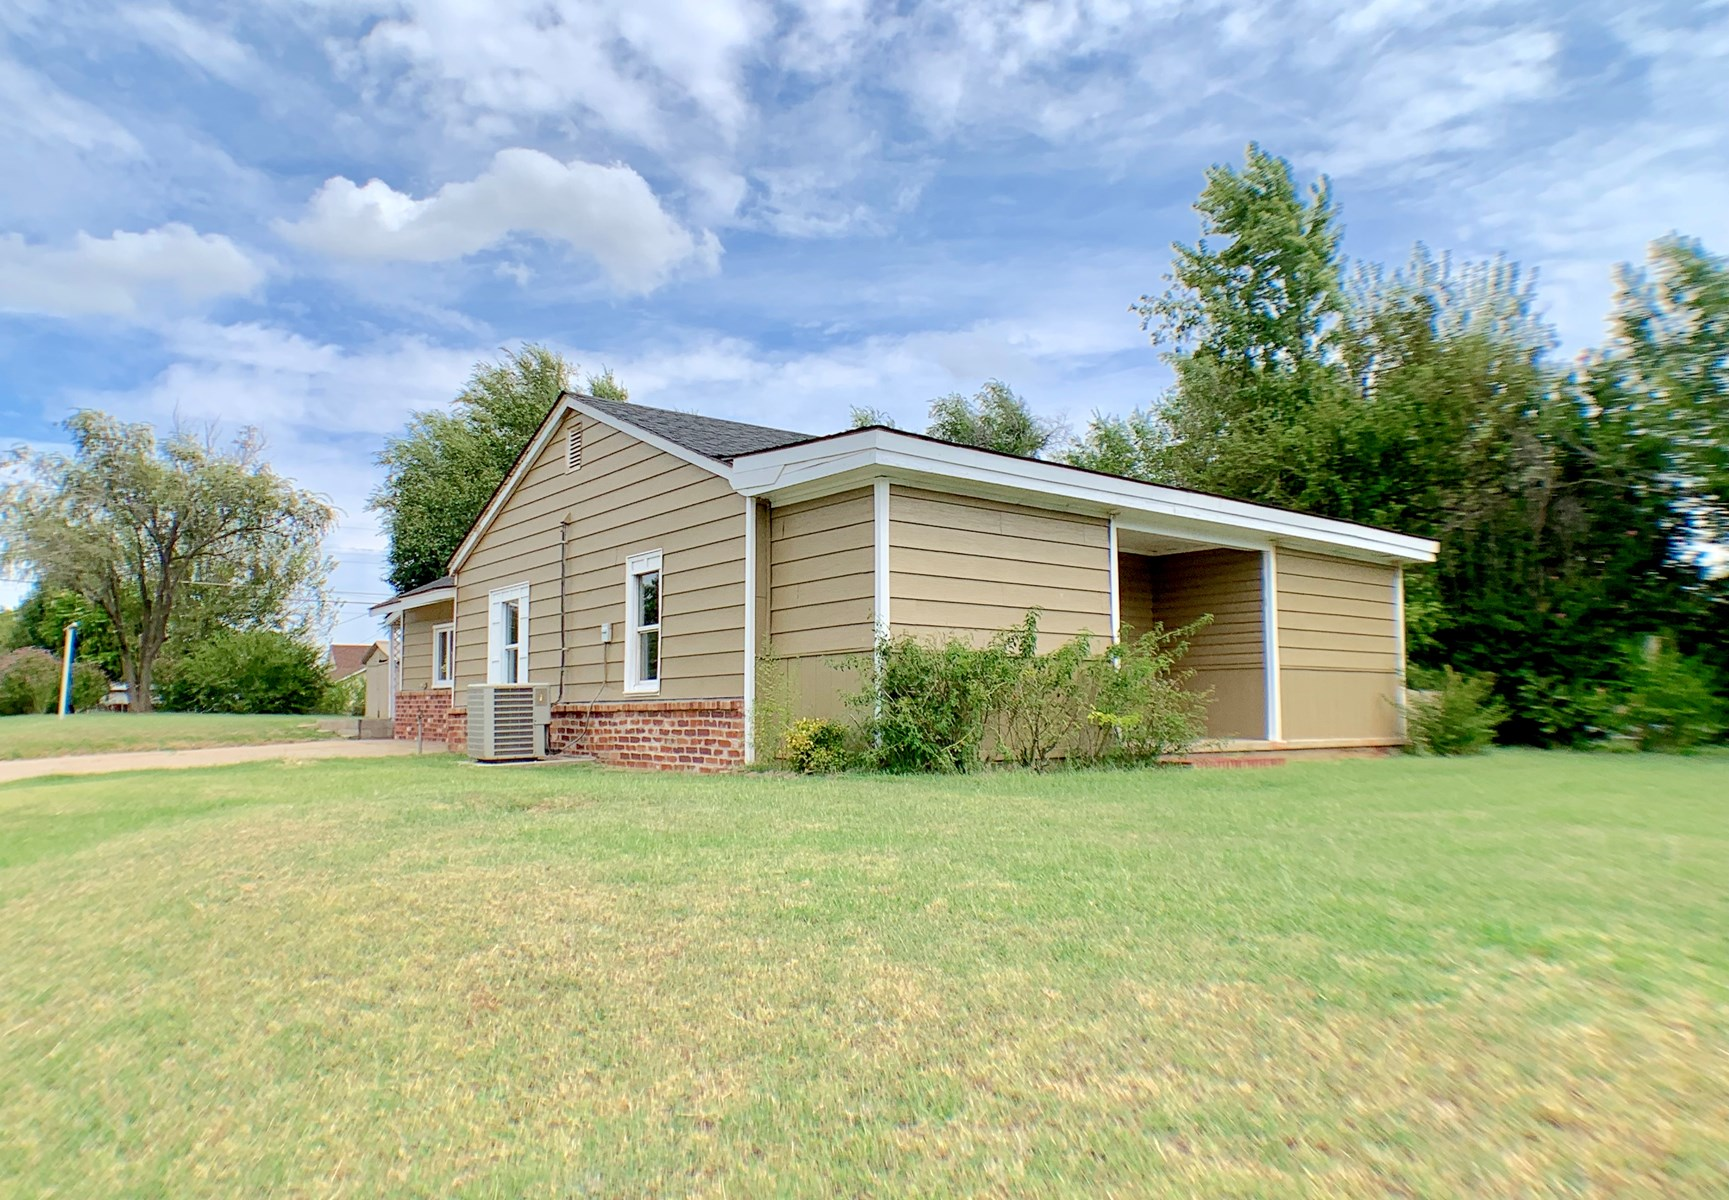 ELK CITY HOME FOR SALE RECENTLY REMODELED